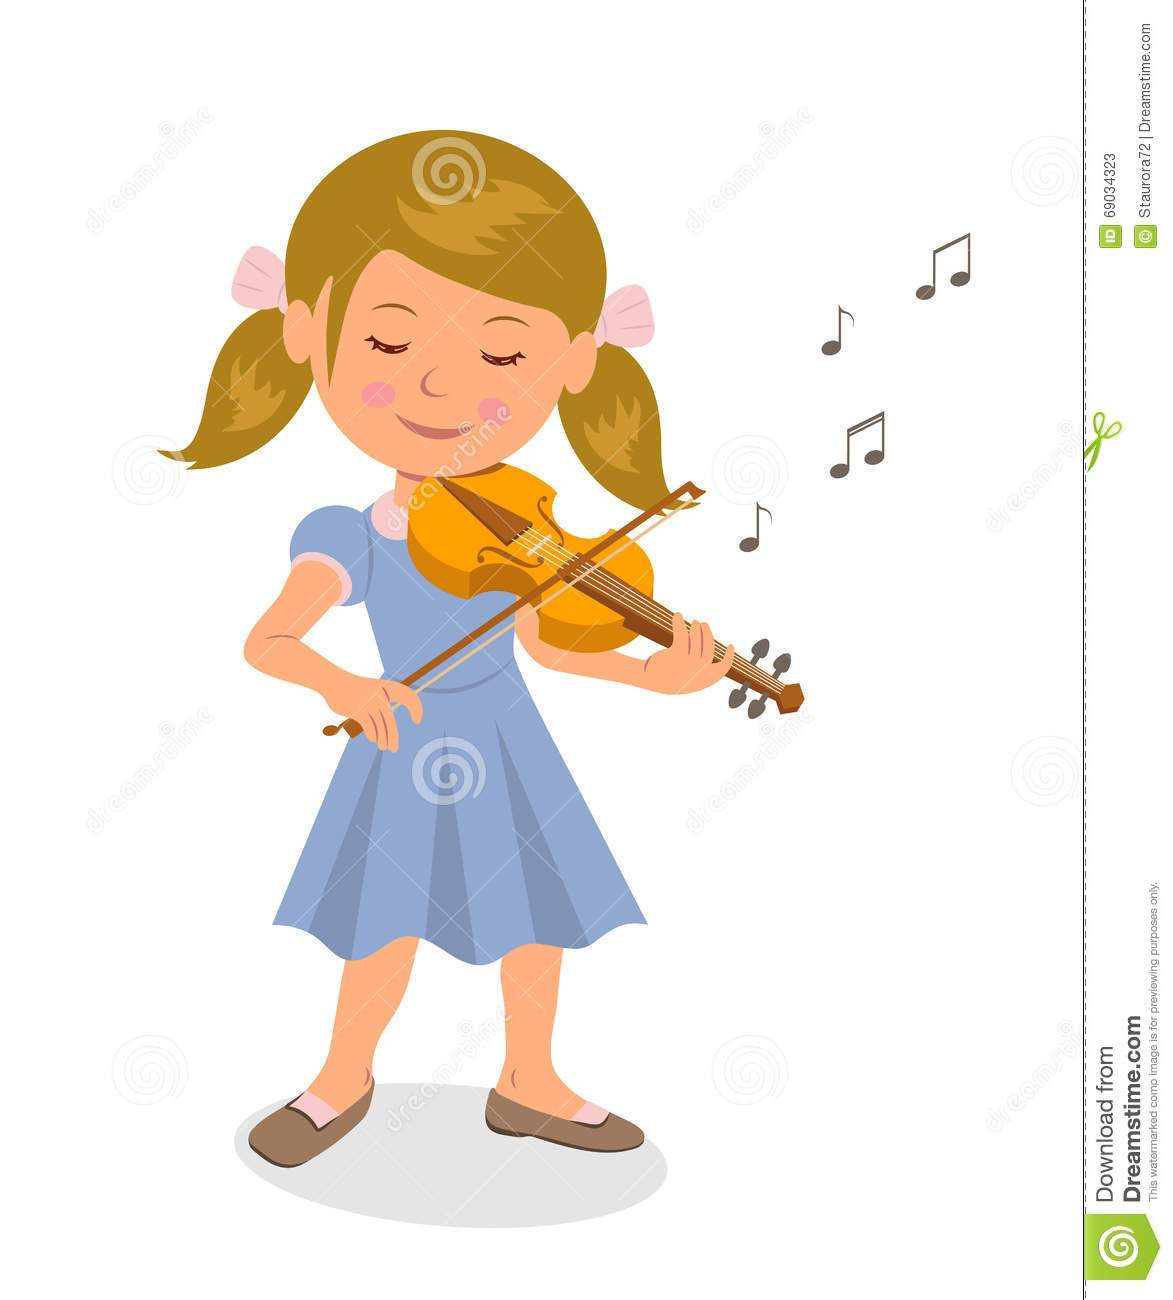 Girl playing the violin clipart vector free library Girl playing violin clipart 7 » Clipart Portal vector free library